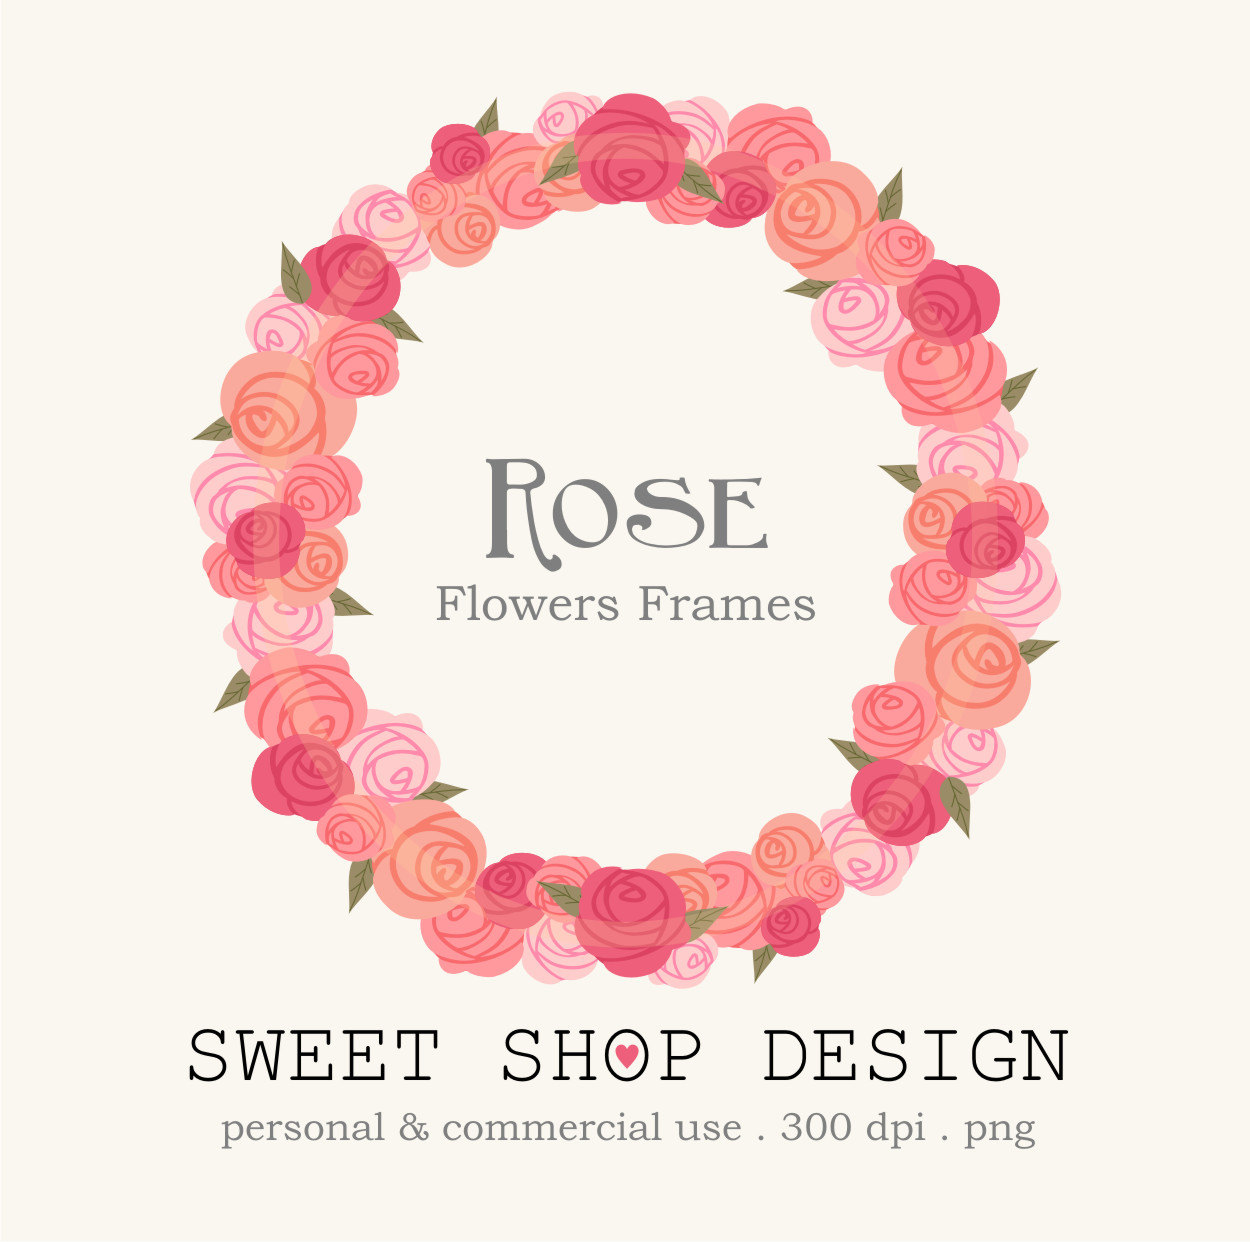 Floral clipart round flower frame Free on Art Etsy clipart